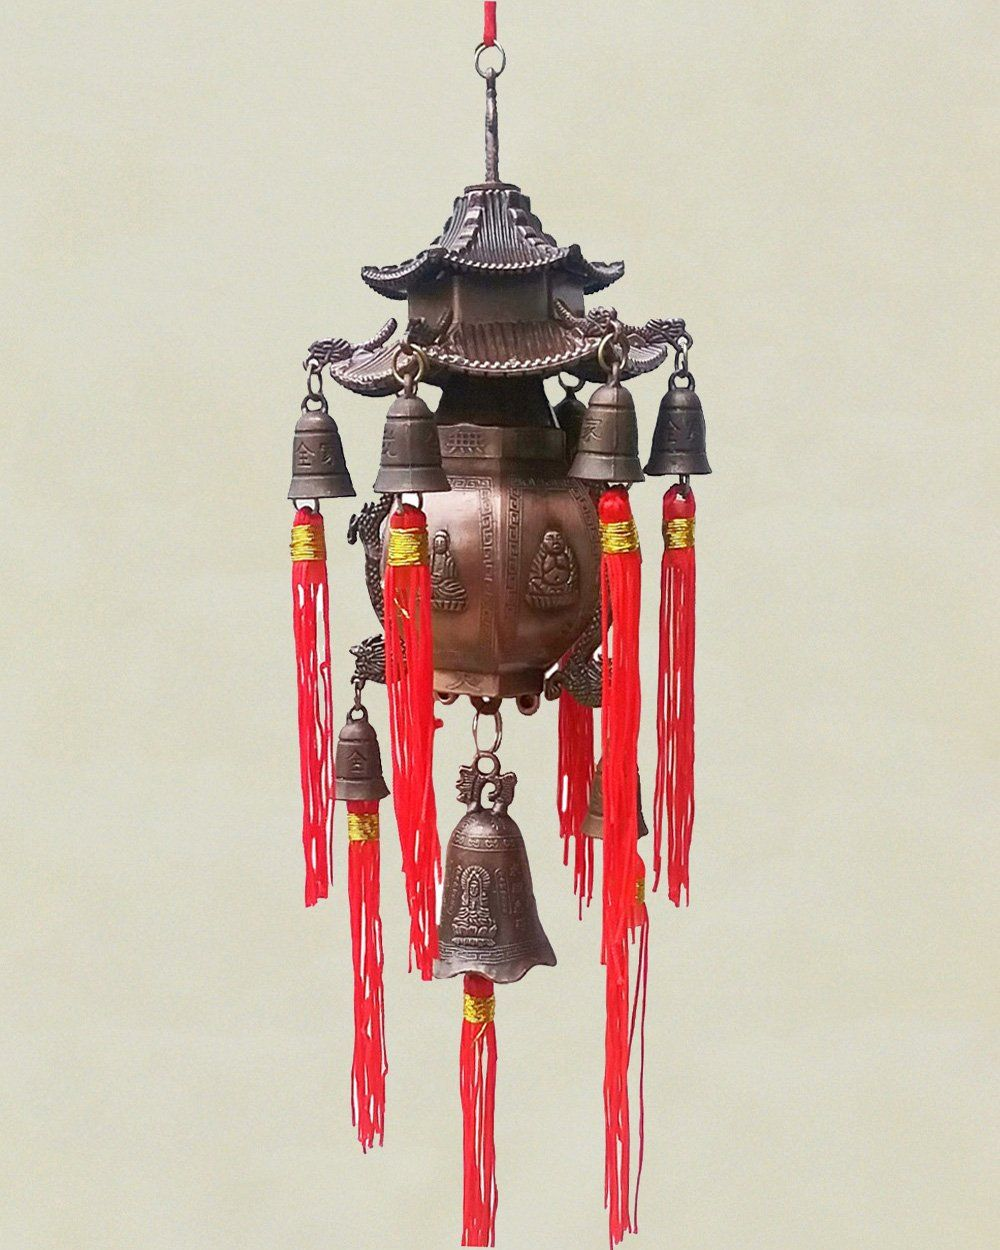 Chi Energy Feng Shui 9 Bells Pagoda Wind Chime | Wall Decor